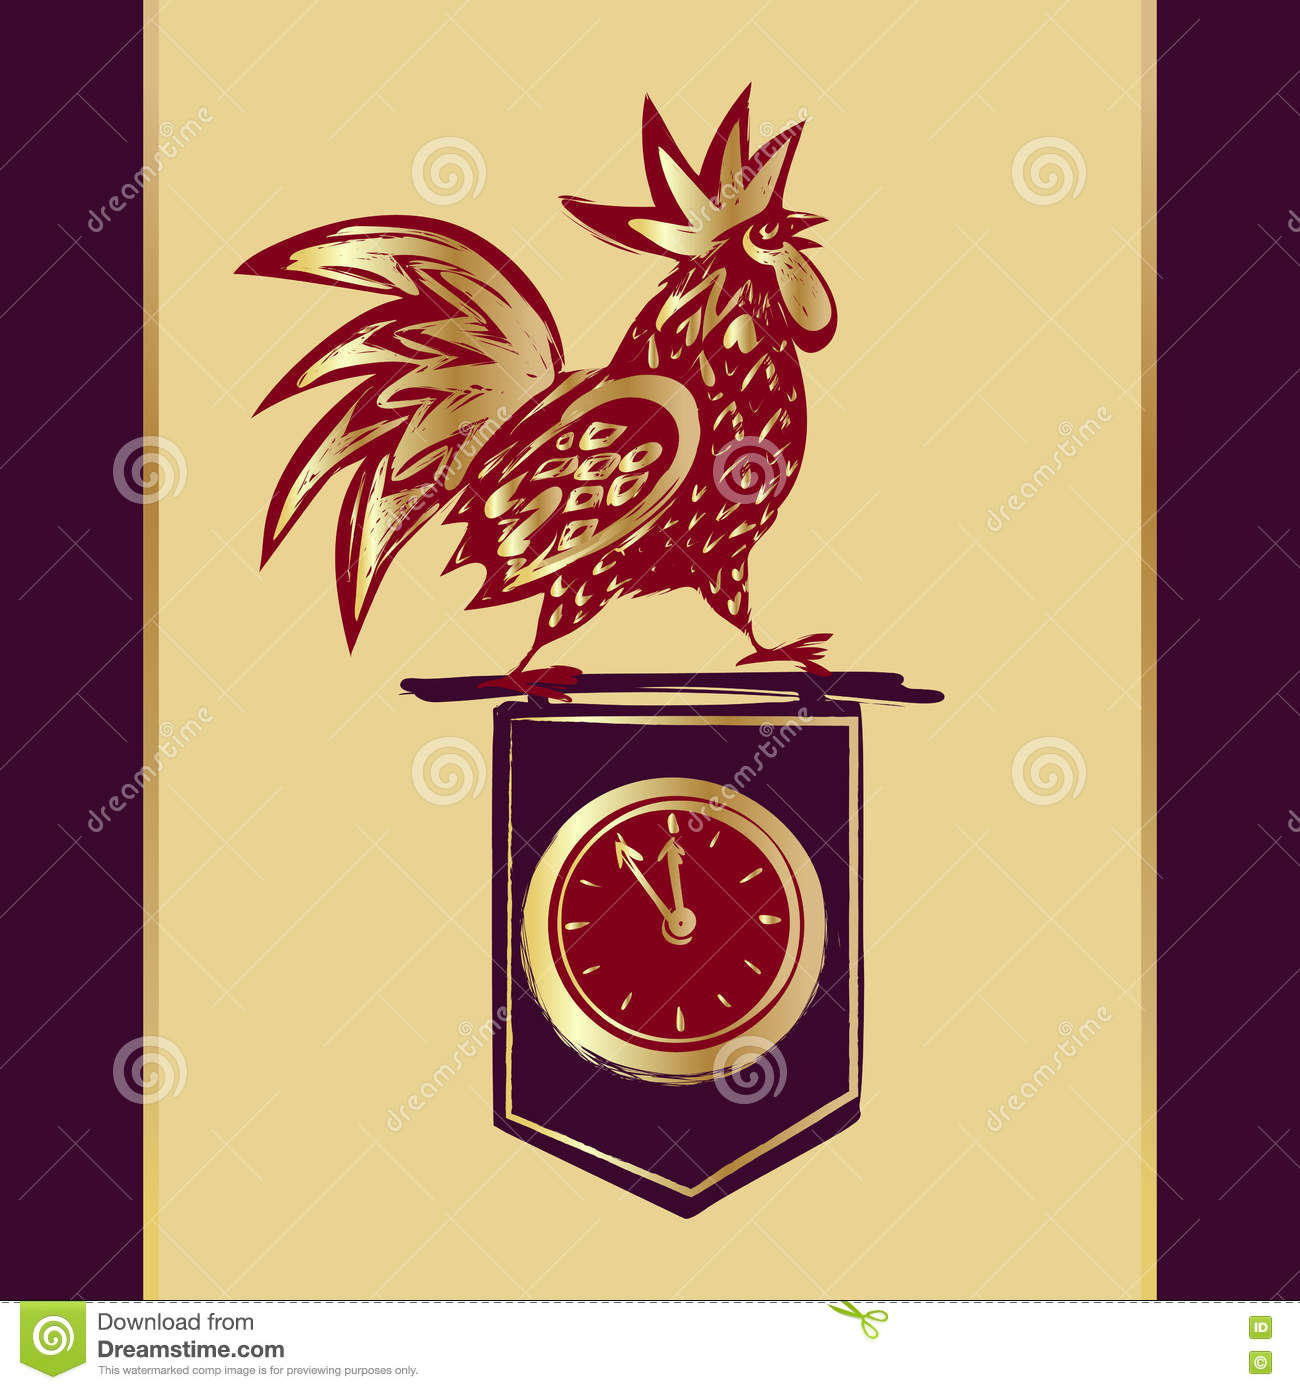 2017 chinese new year of the rooster vector illustration hand drawn illustration red rooster